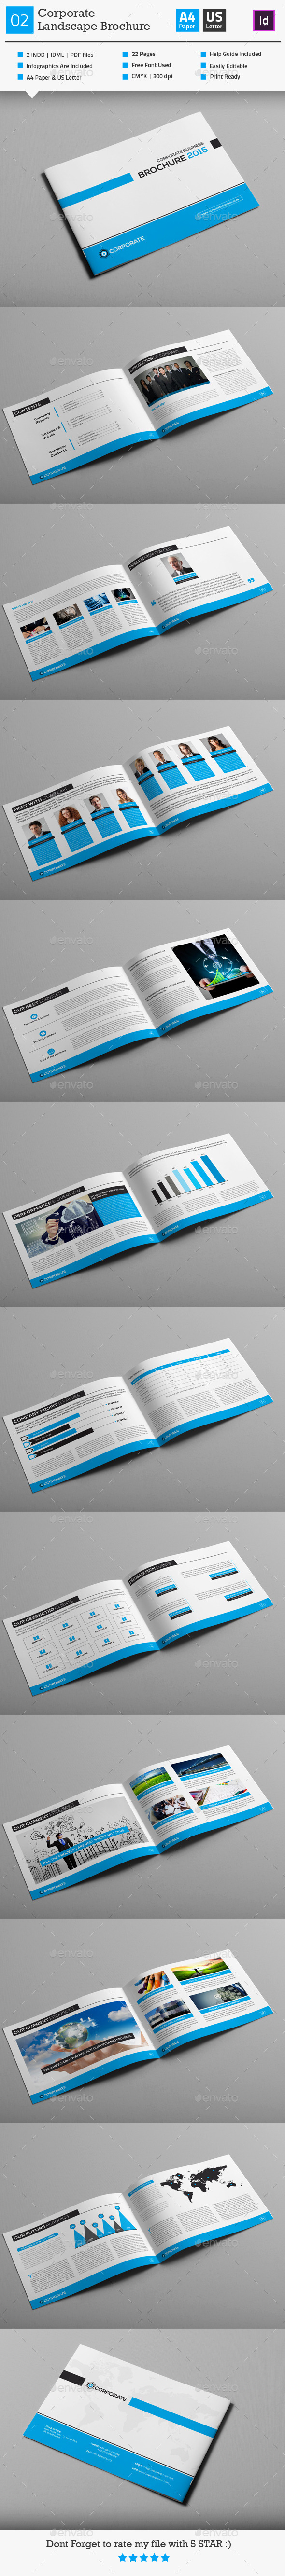 GraphicRiver Corporate Business Brochure 02 Landscape 9170936